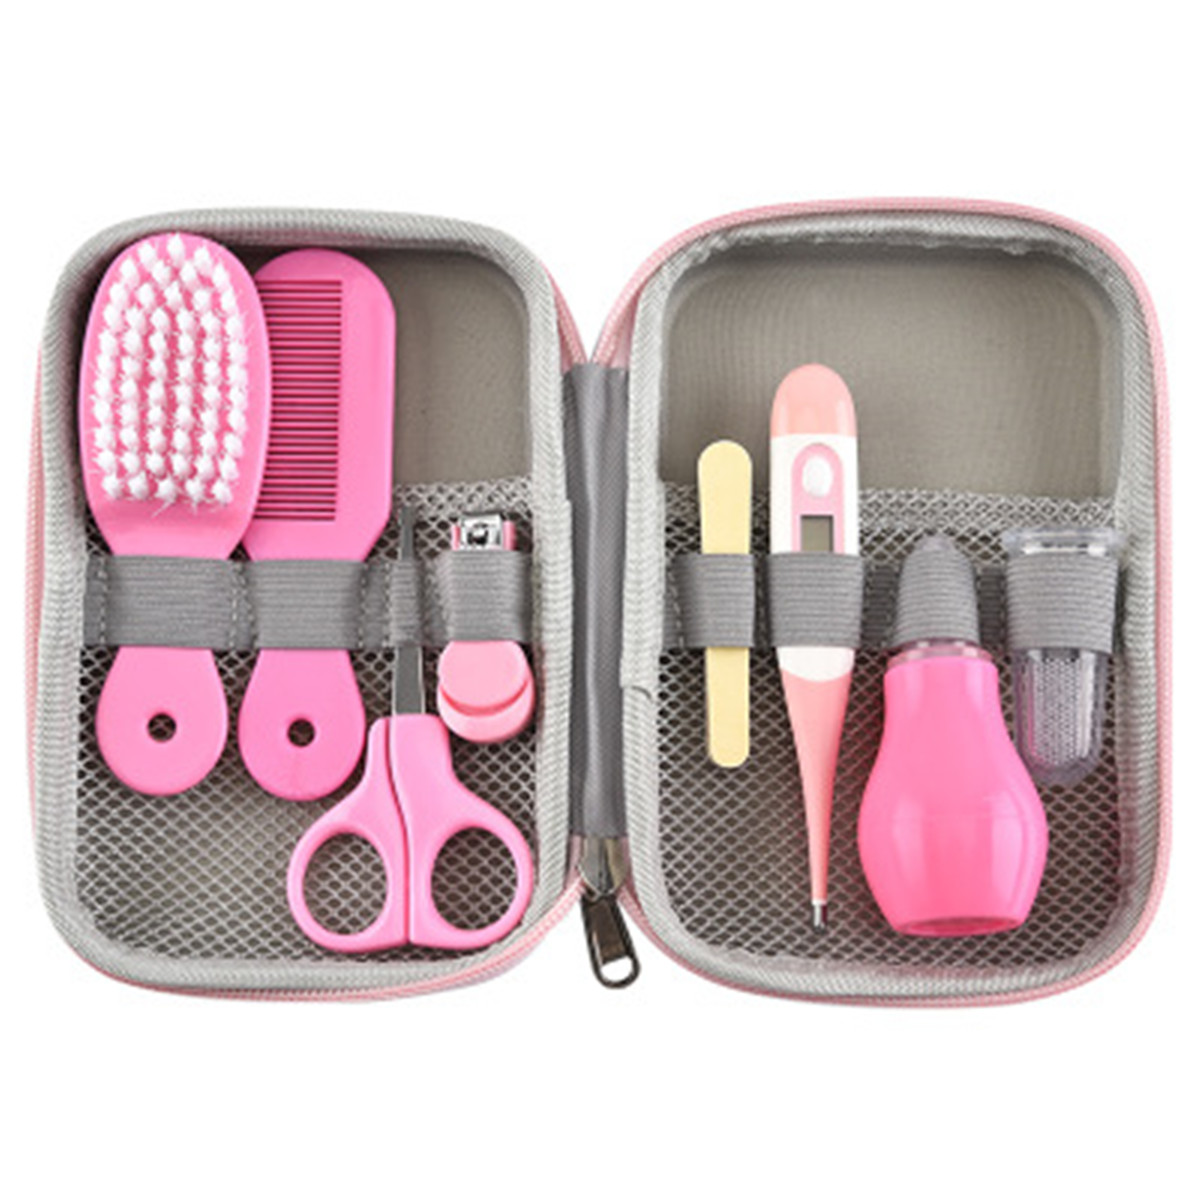 8Pcs/Set Portable Baby Health Care Kit Newborn Baby Grooming Kit Nail Clipper Scissors Hair Brush Comb Safety Care Set Baby Care